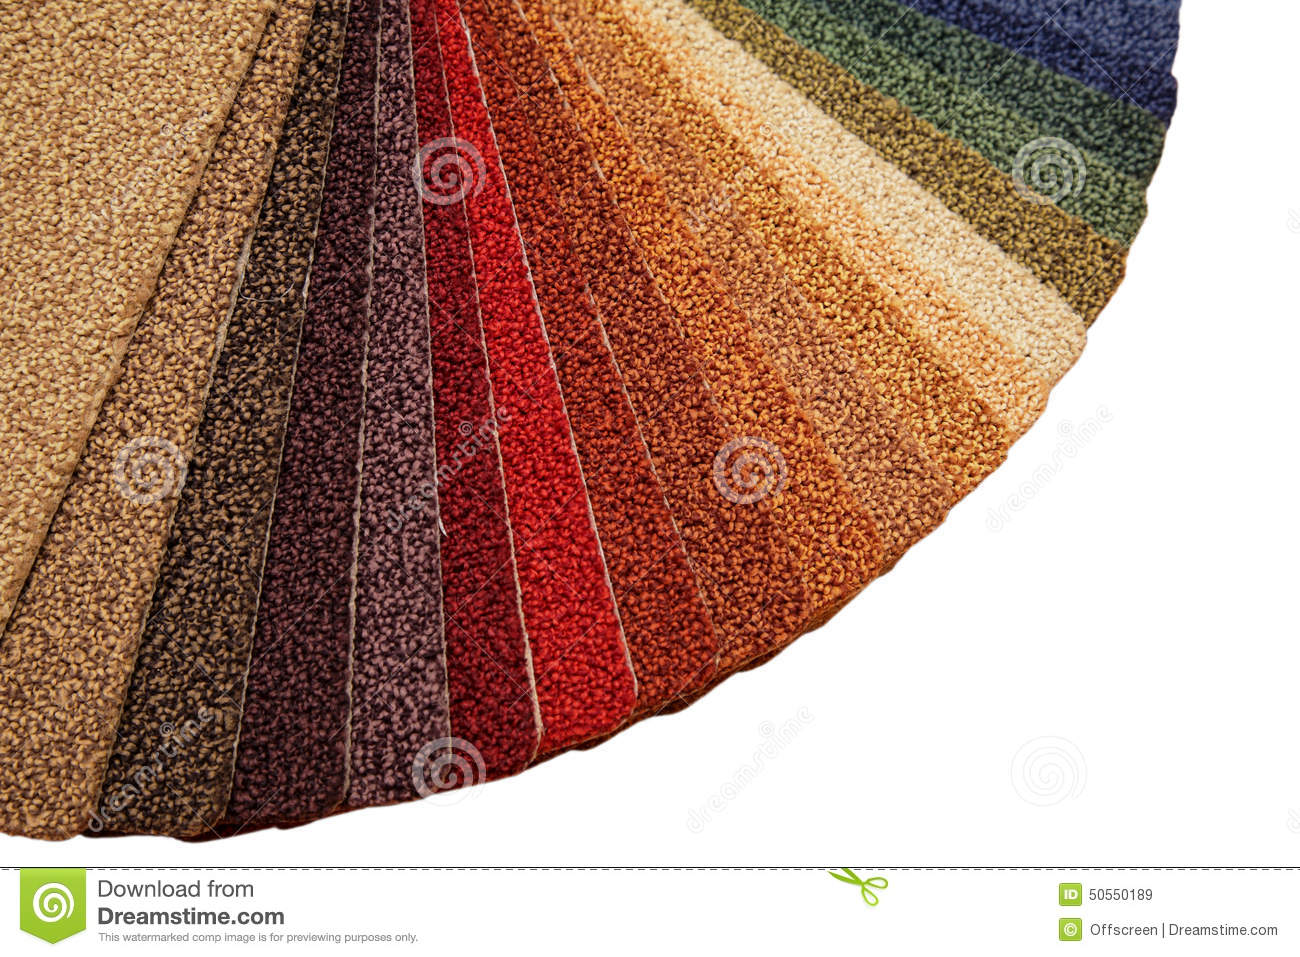 Samples of carpet covering